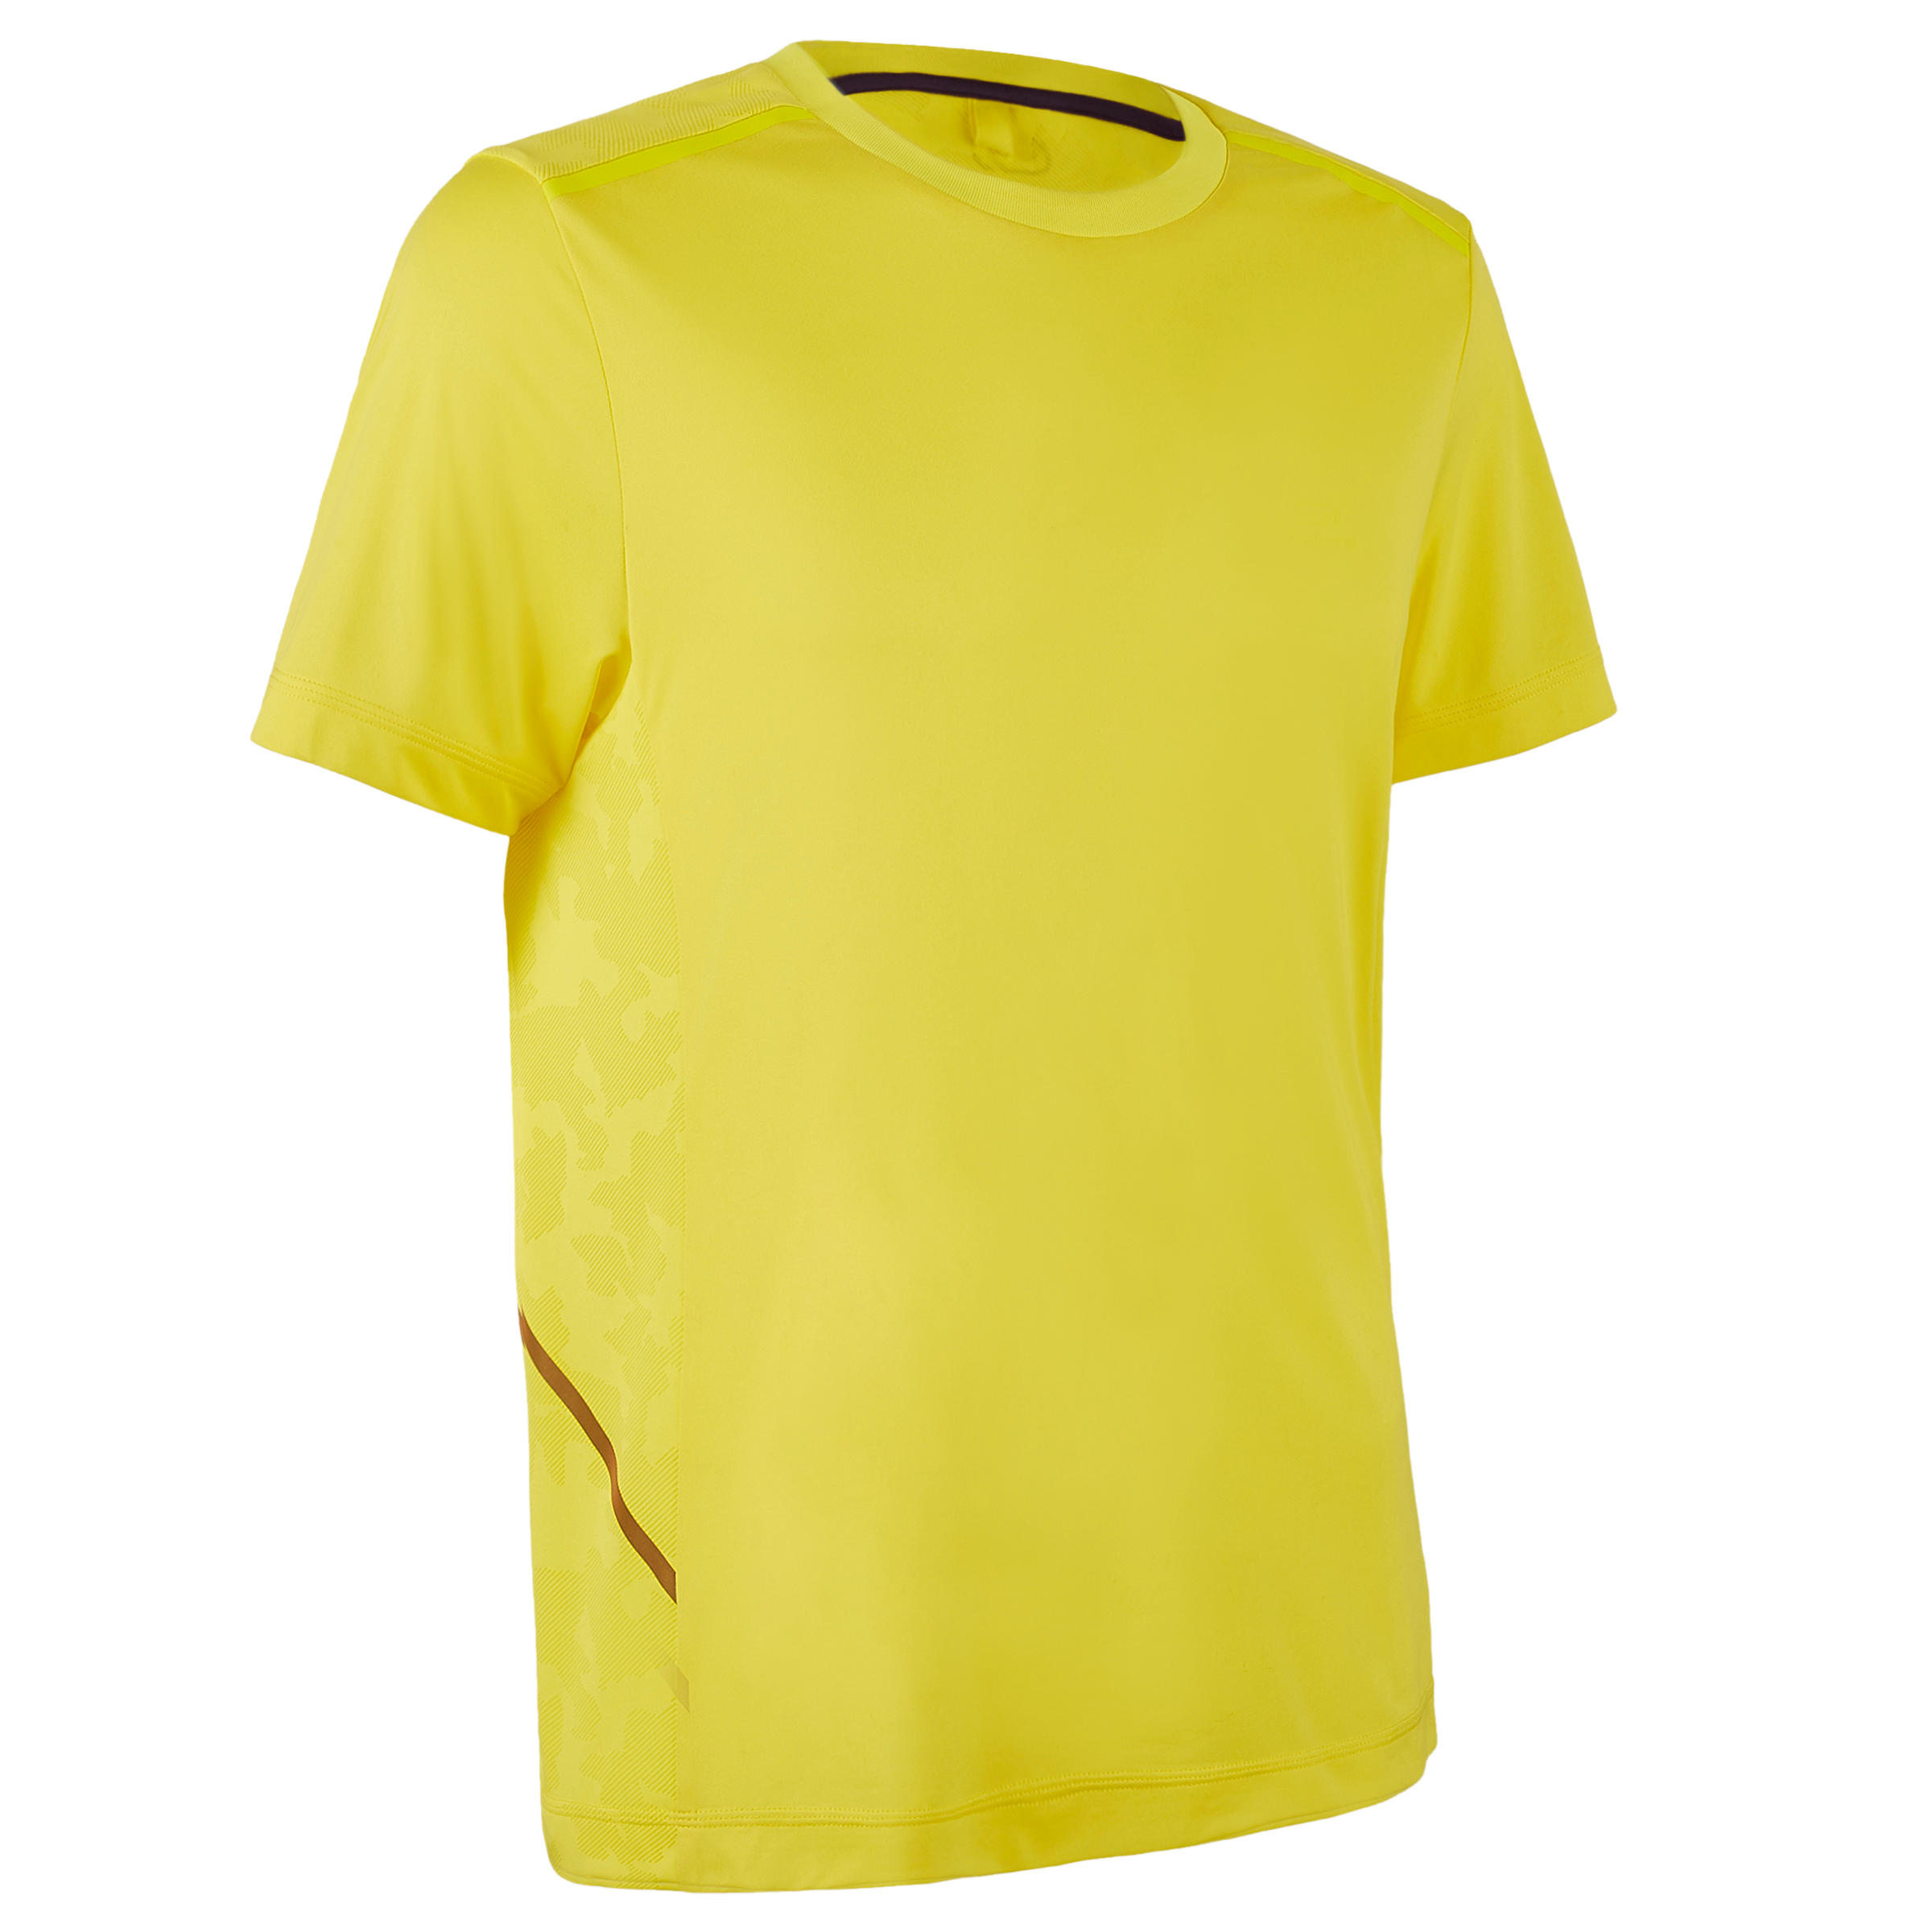 CAMISETA DE RUNNING PARA HOMBRE RUN DRY+ BREATHE AMARILLA